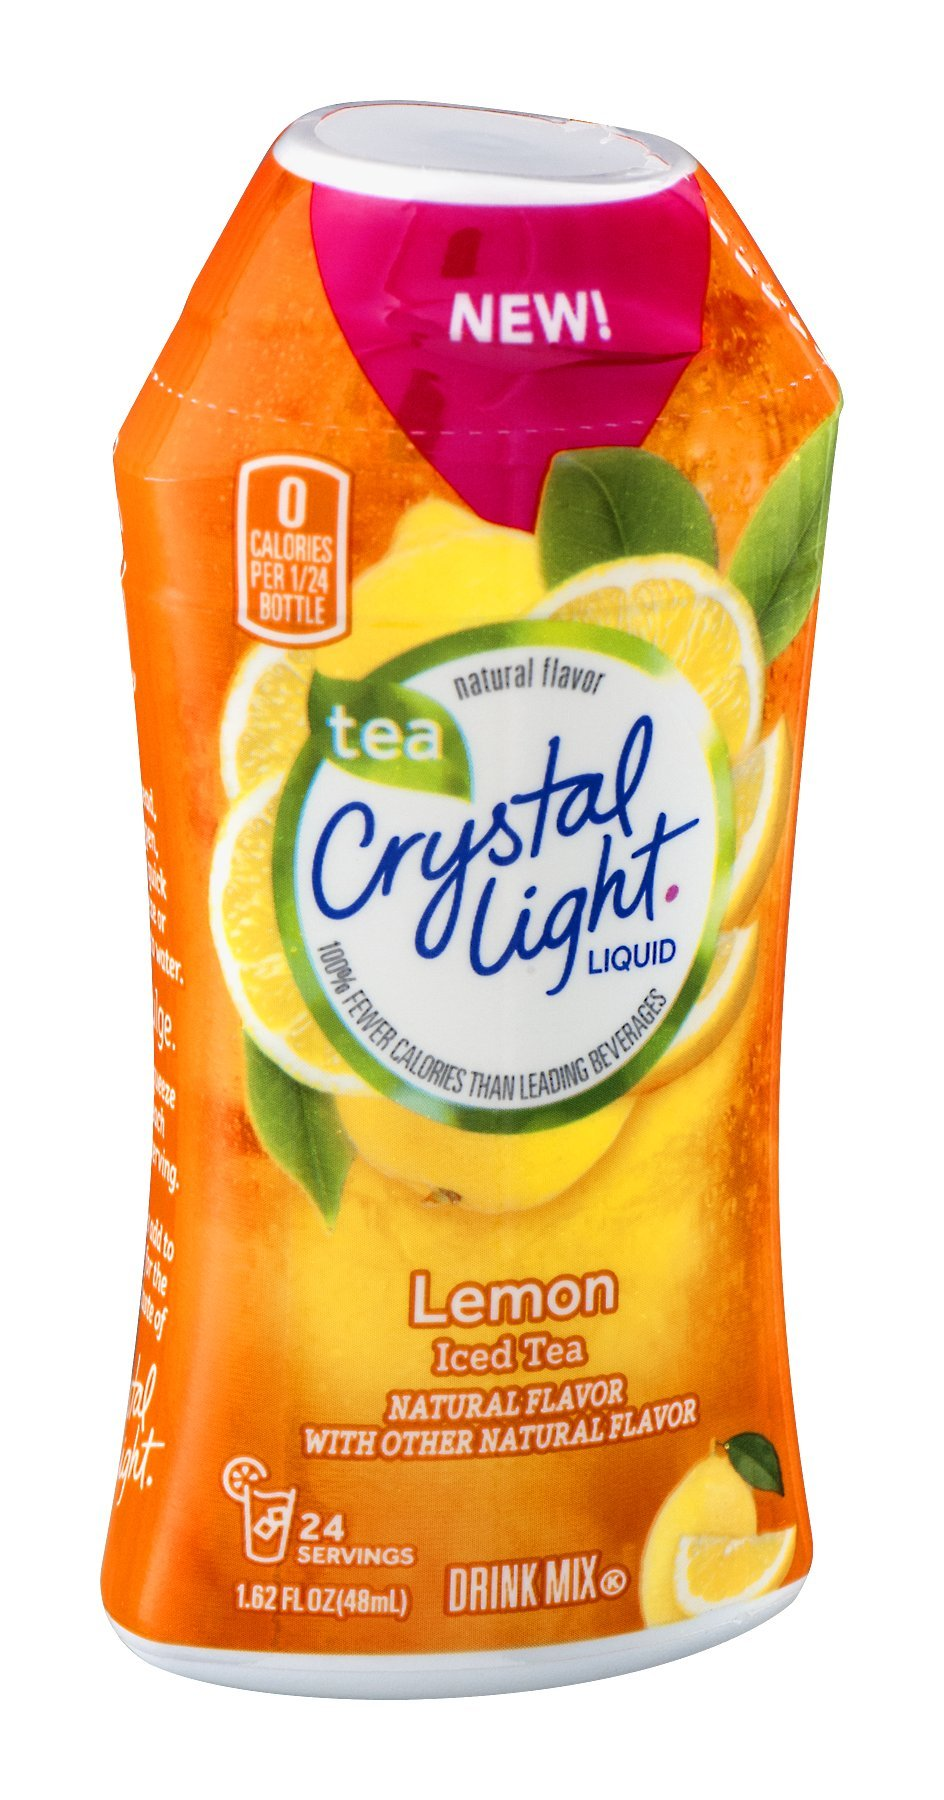 Crystal Light Liquid Lemon Iced Tea 1.62 FZ (Pack of 24)